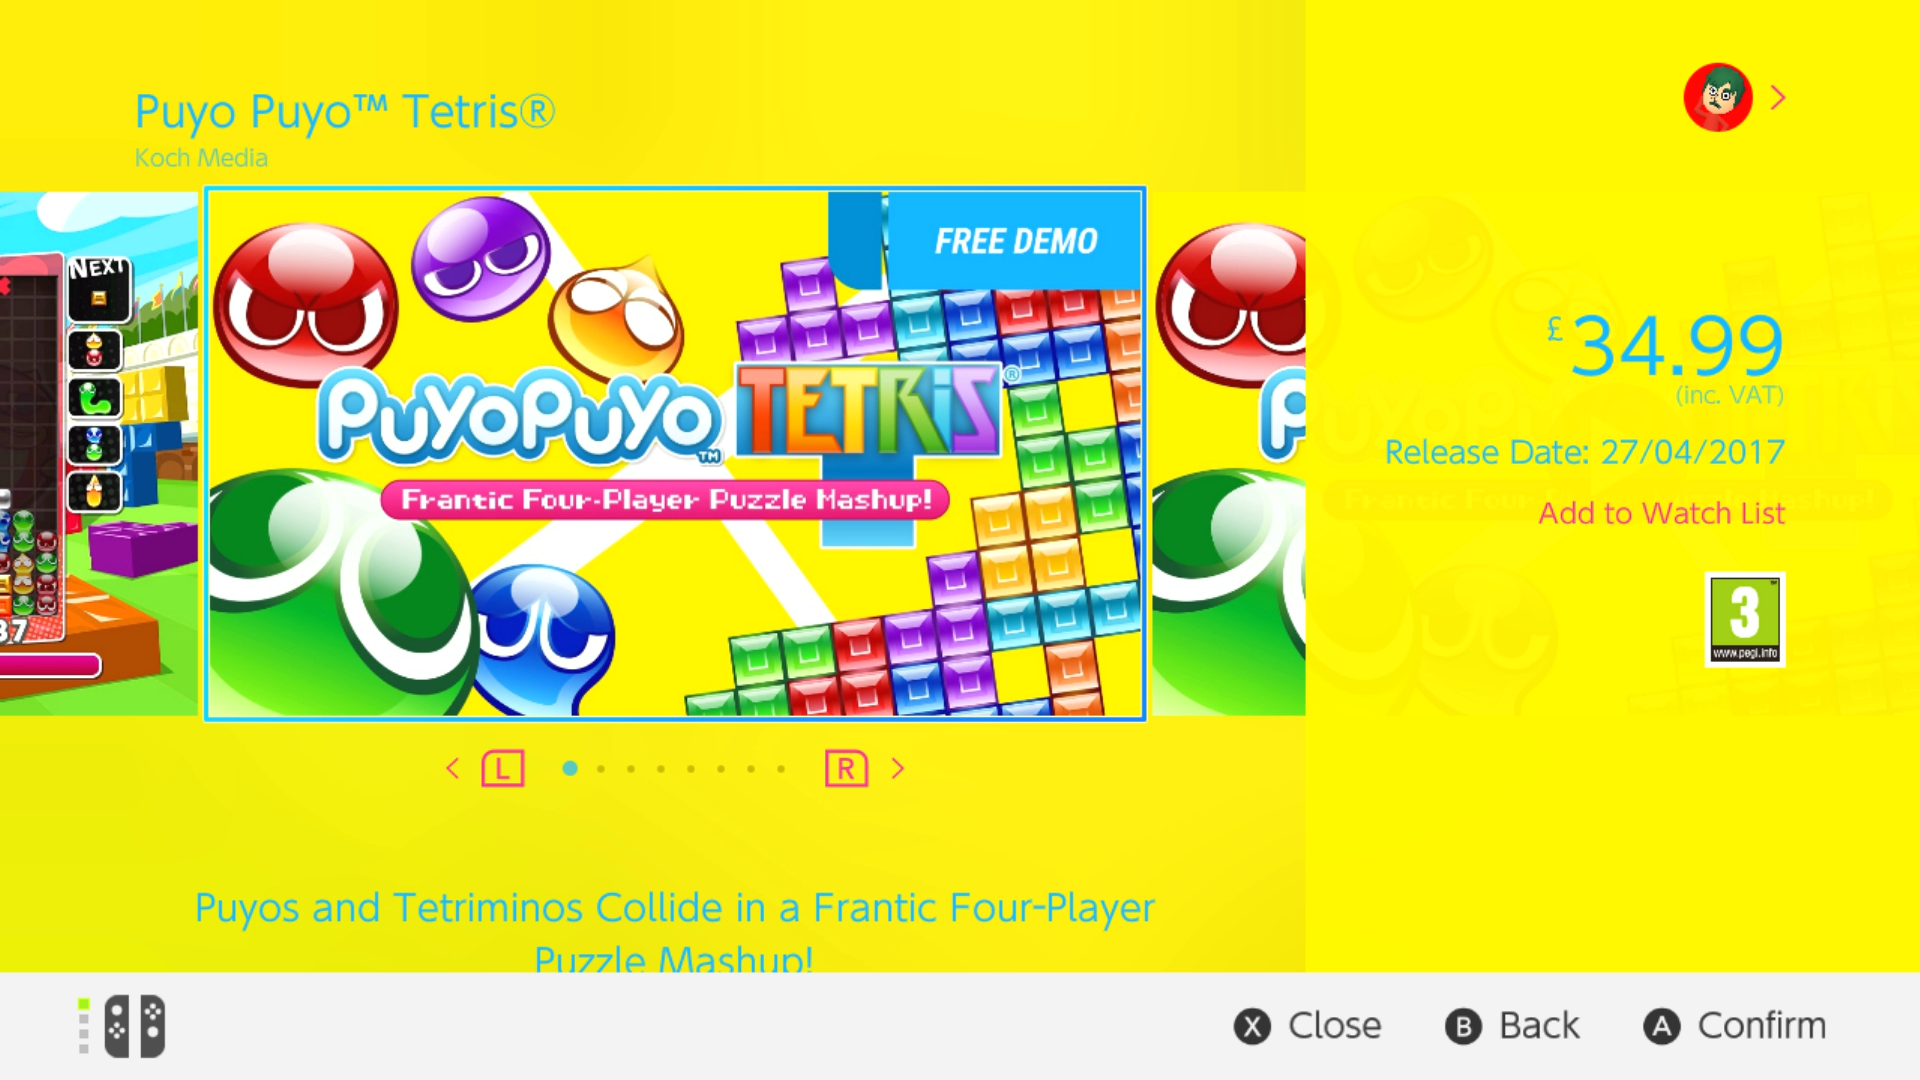 Puyo Puyo Tetris Screenshot 2017-04-10 12-35-05